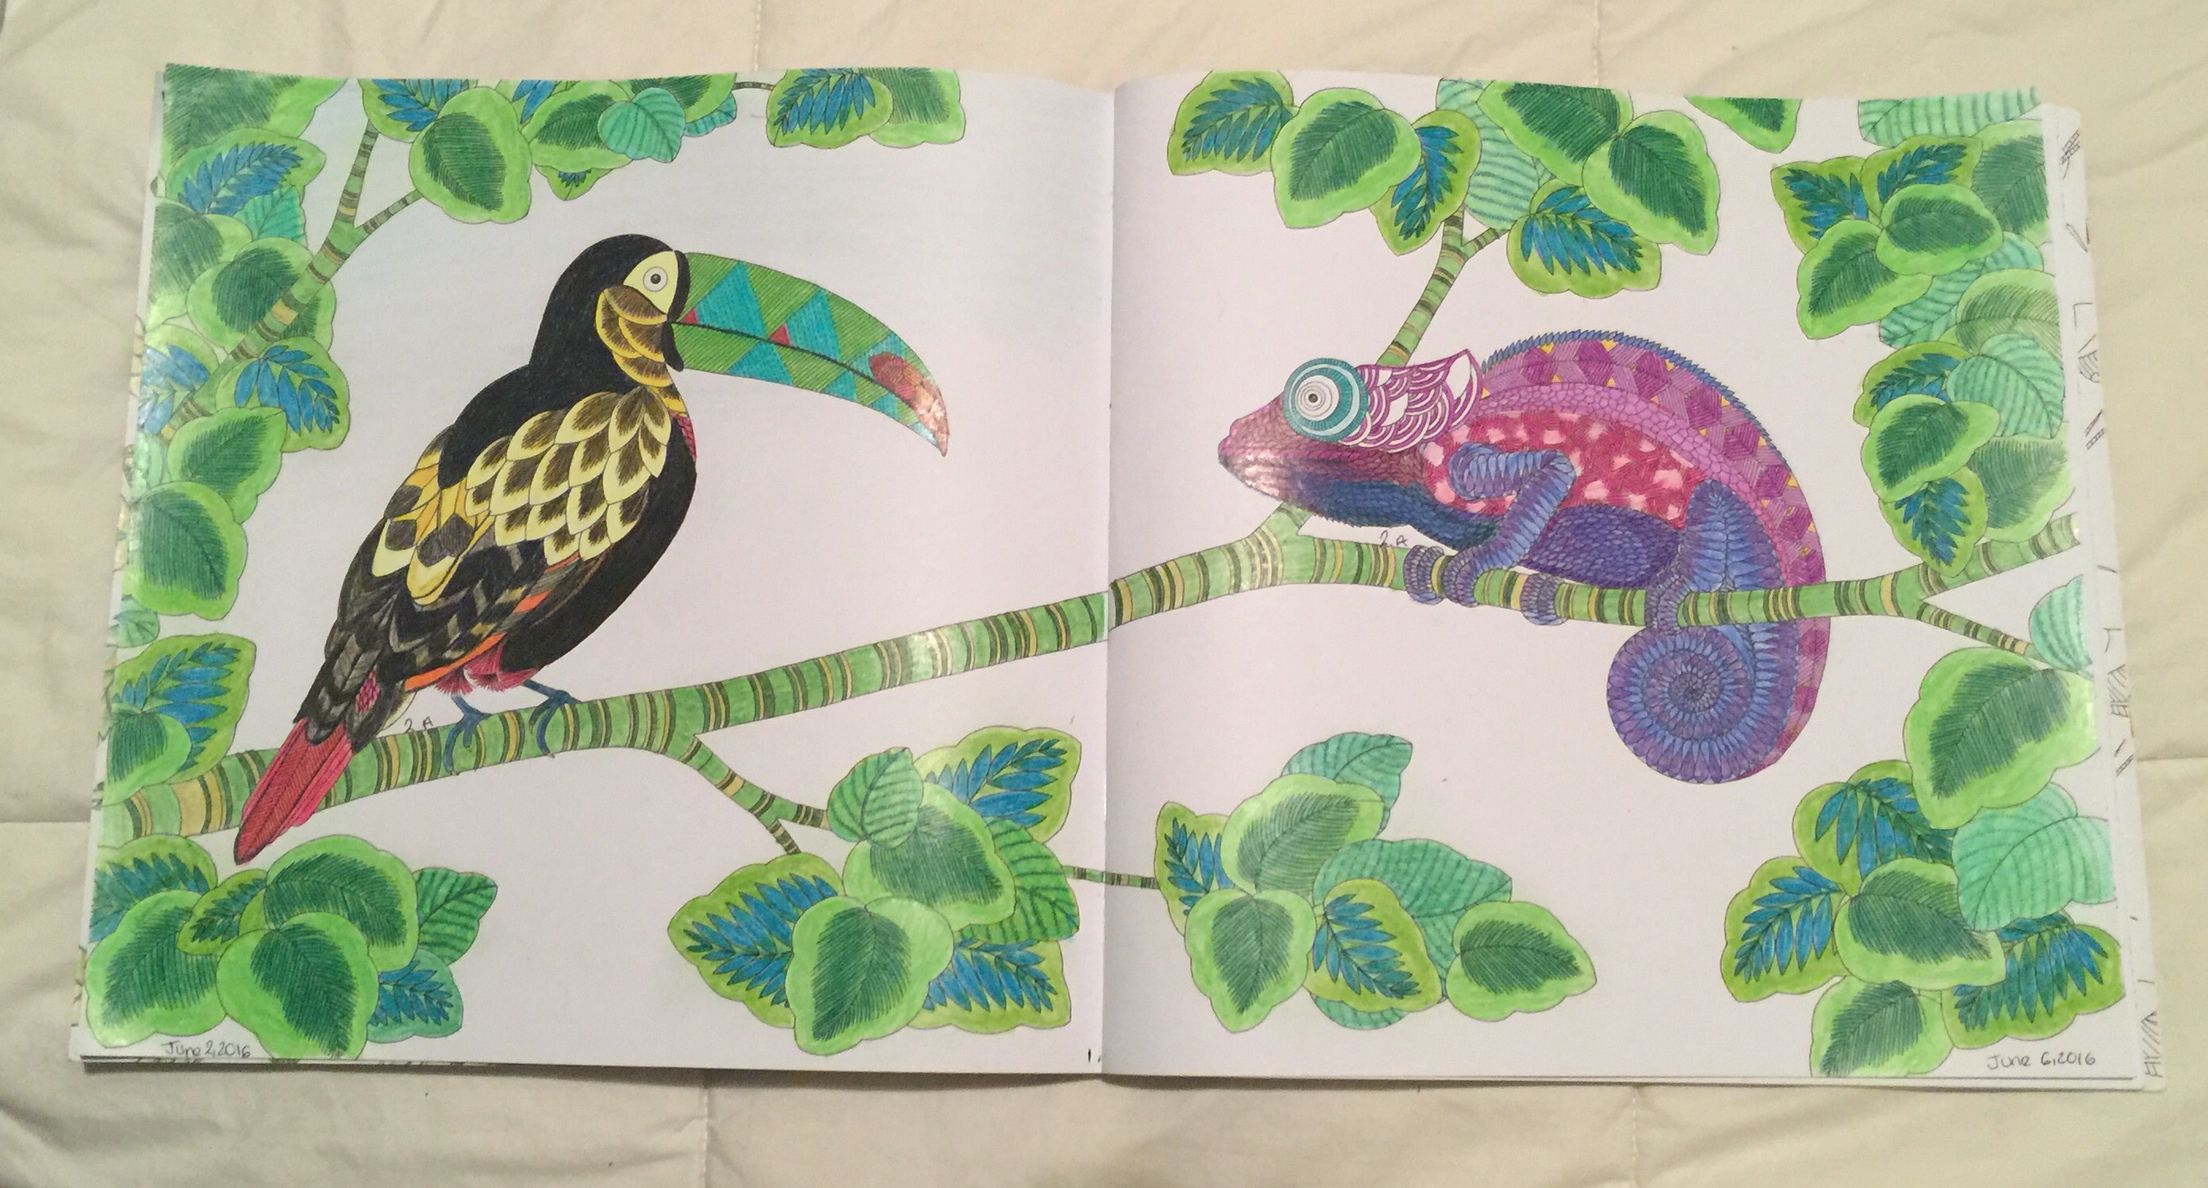 Animal Kingdom Millie Marotta Colouring Book Toucan Bird Chameleon Adult